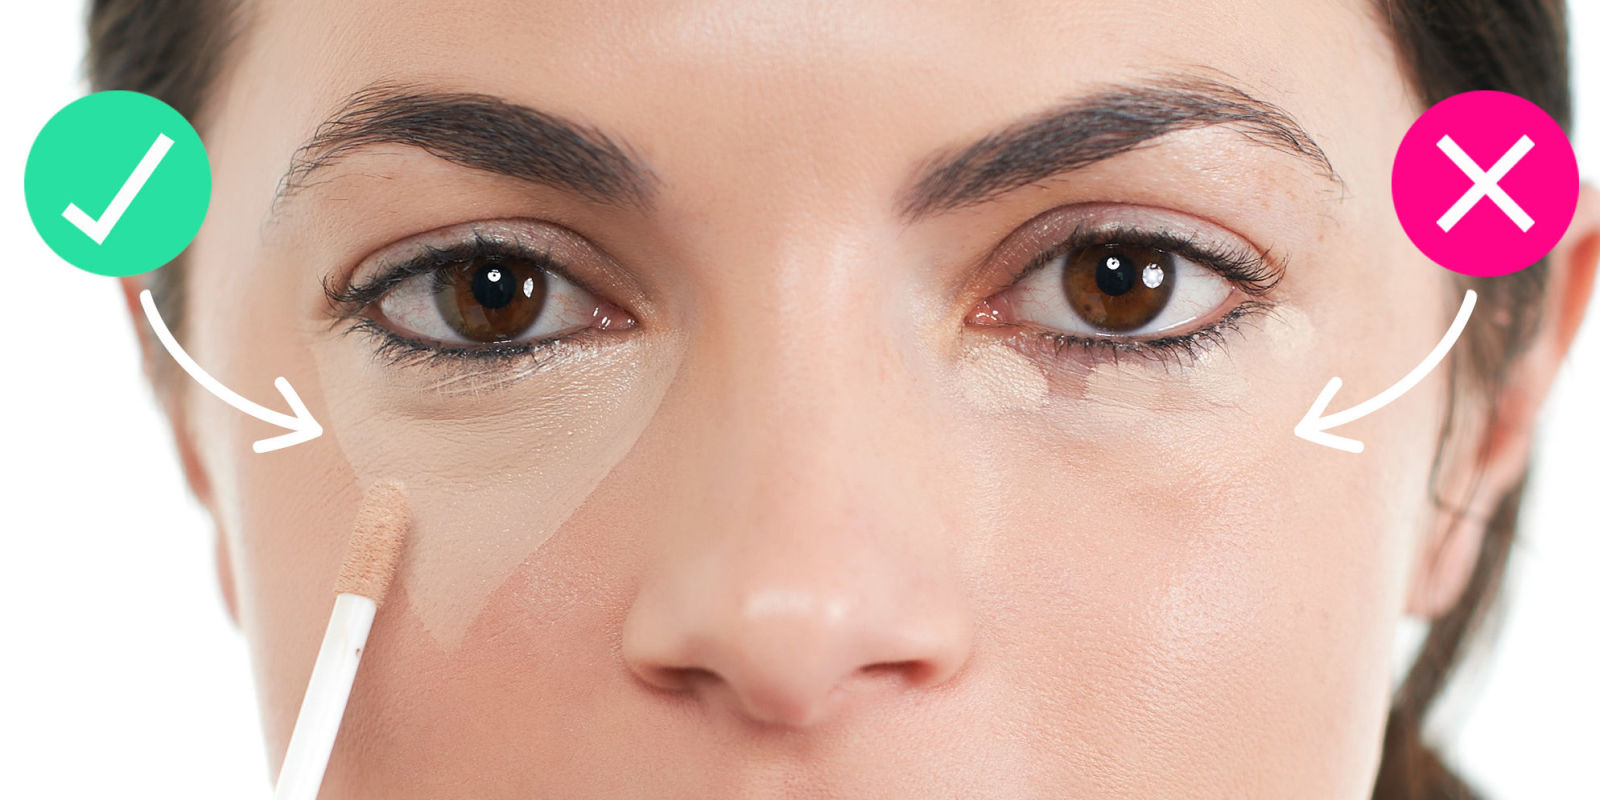 How To Put Makeup Under Your Eyes